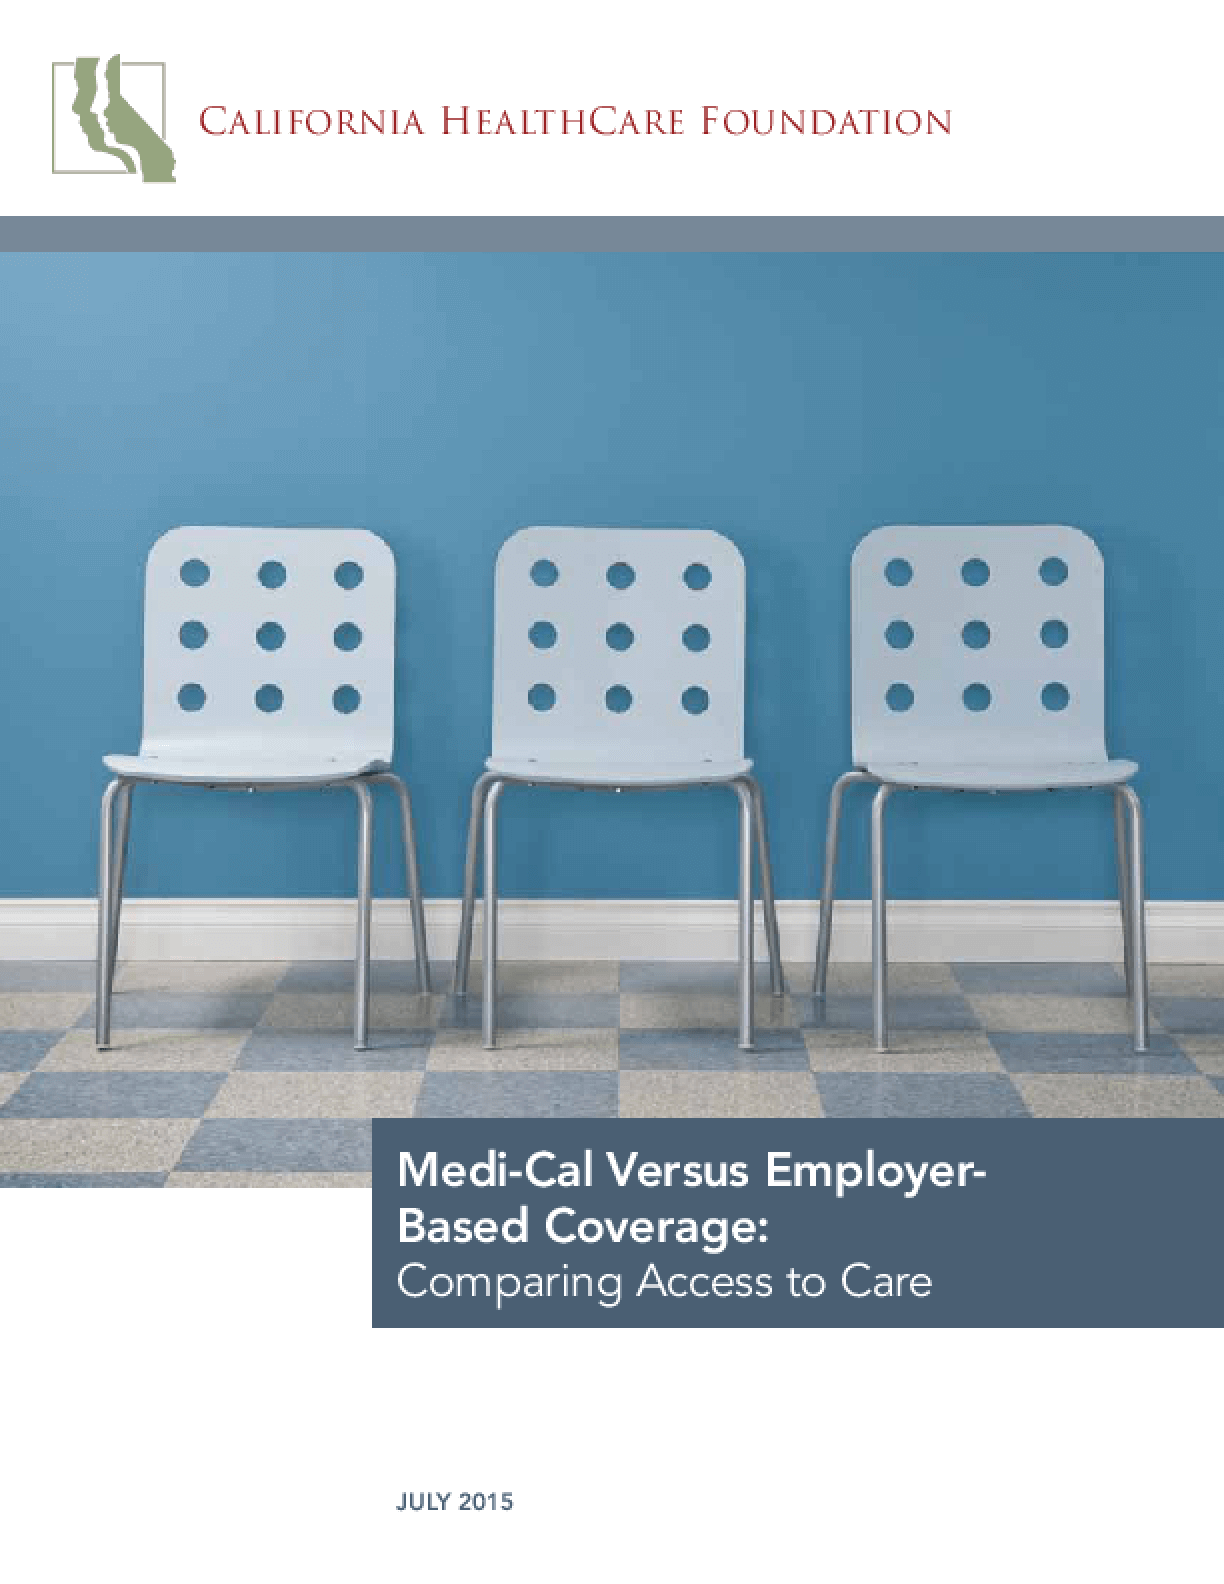 Medi-Cal Versus Employer-Based Coverage: Comparing Access to Care